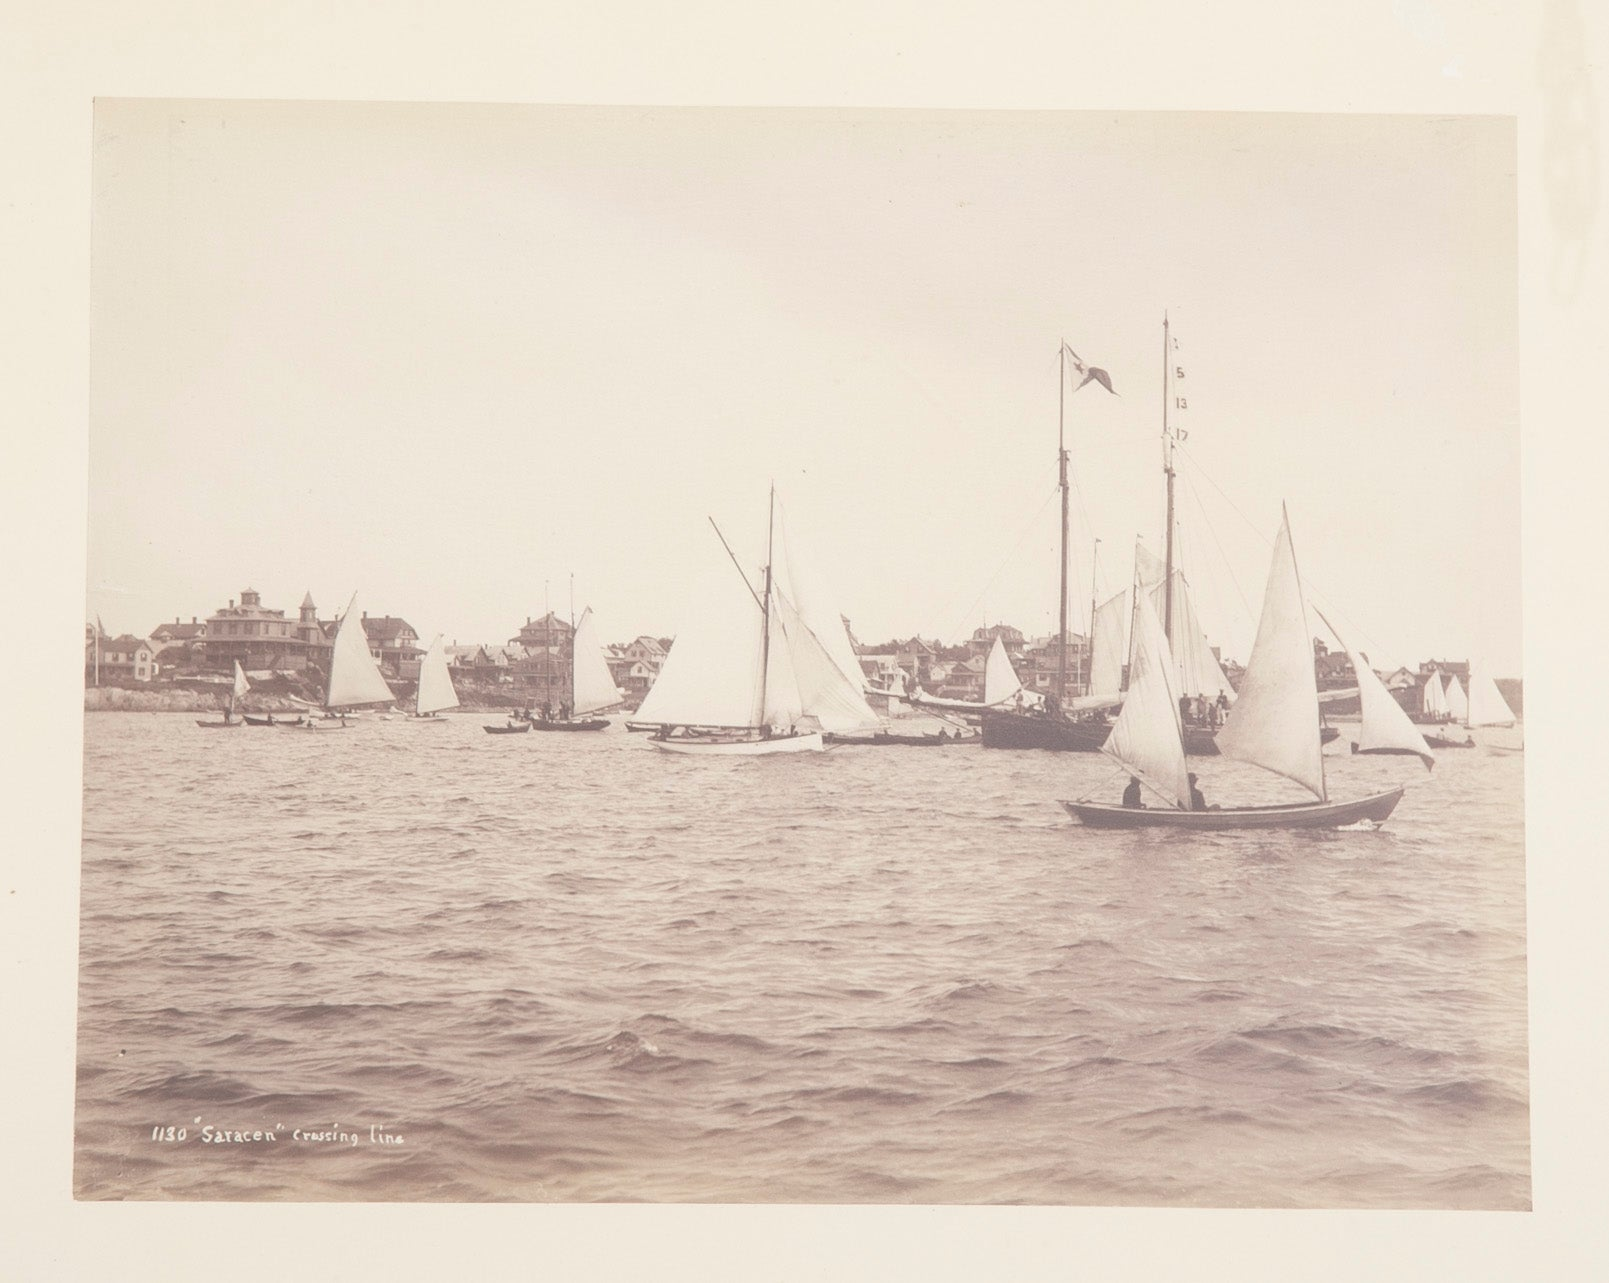 "Original Photograph by Nathaniel Stebbins of ""Saracen"" Crossing the Finish Line"